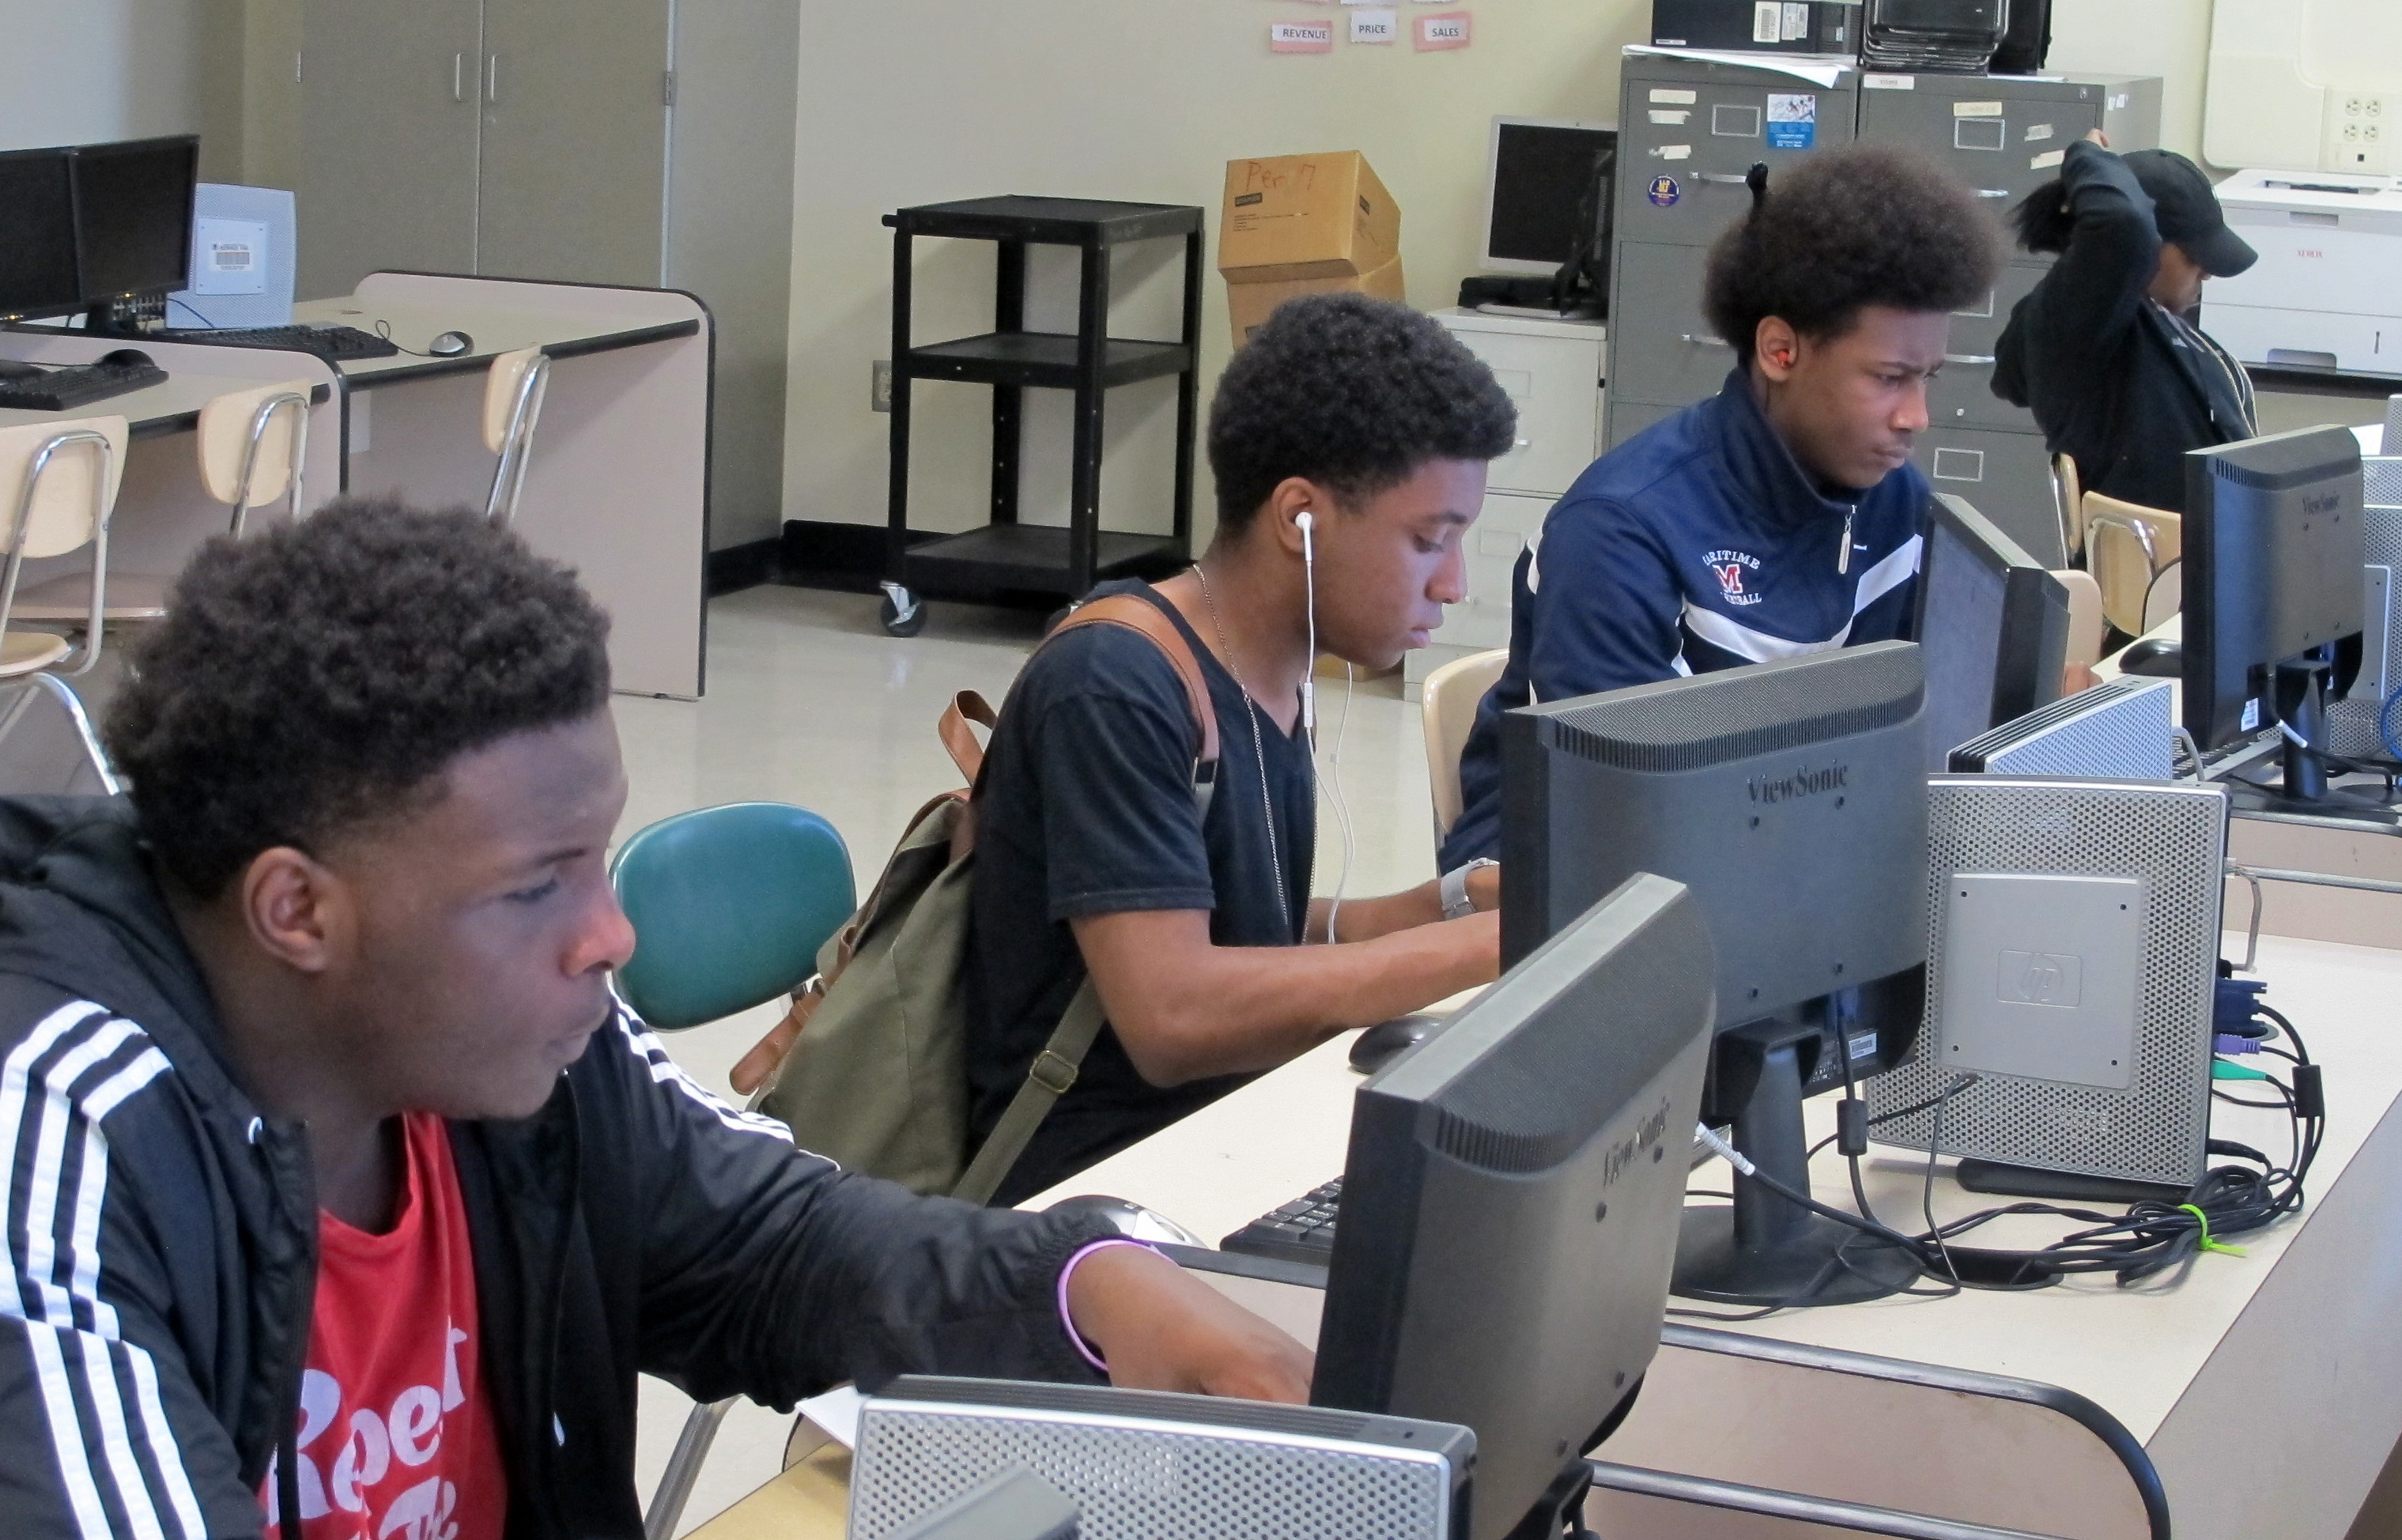 Students work at computers inside Bennett High School in Buffalo, N.Y in May 2016. The high school is being redesigned with a focus on specialty programming, such as computer science or solar energy, in order to position students to land well-paying jobs being created amid a surge in economic development in the city. (AP Photo/Carolyn Thompson).